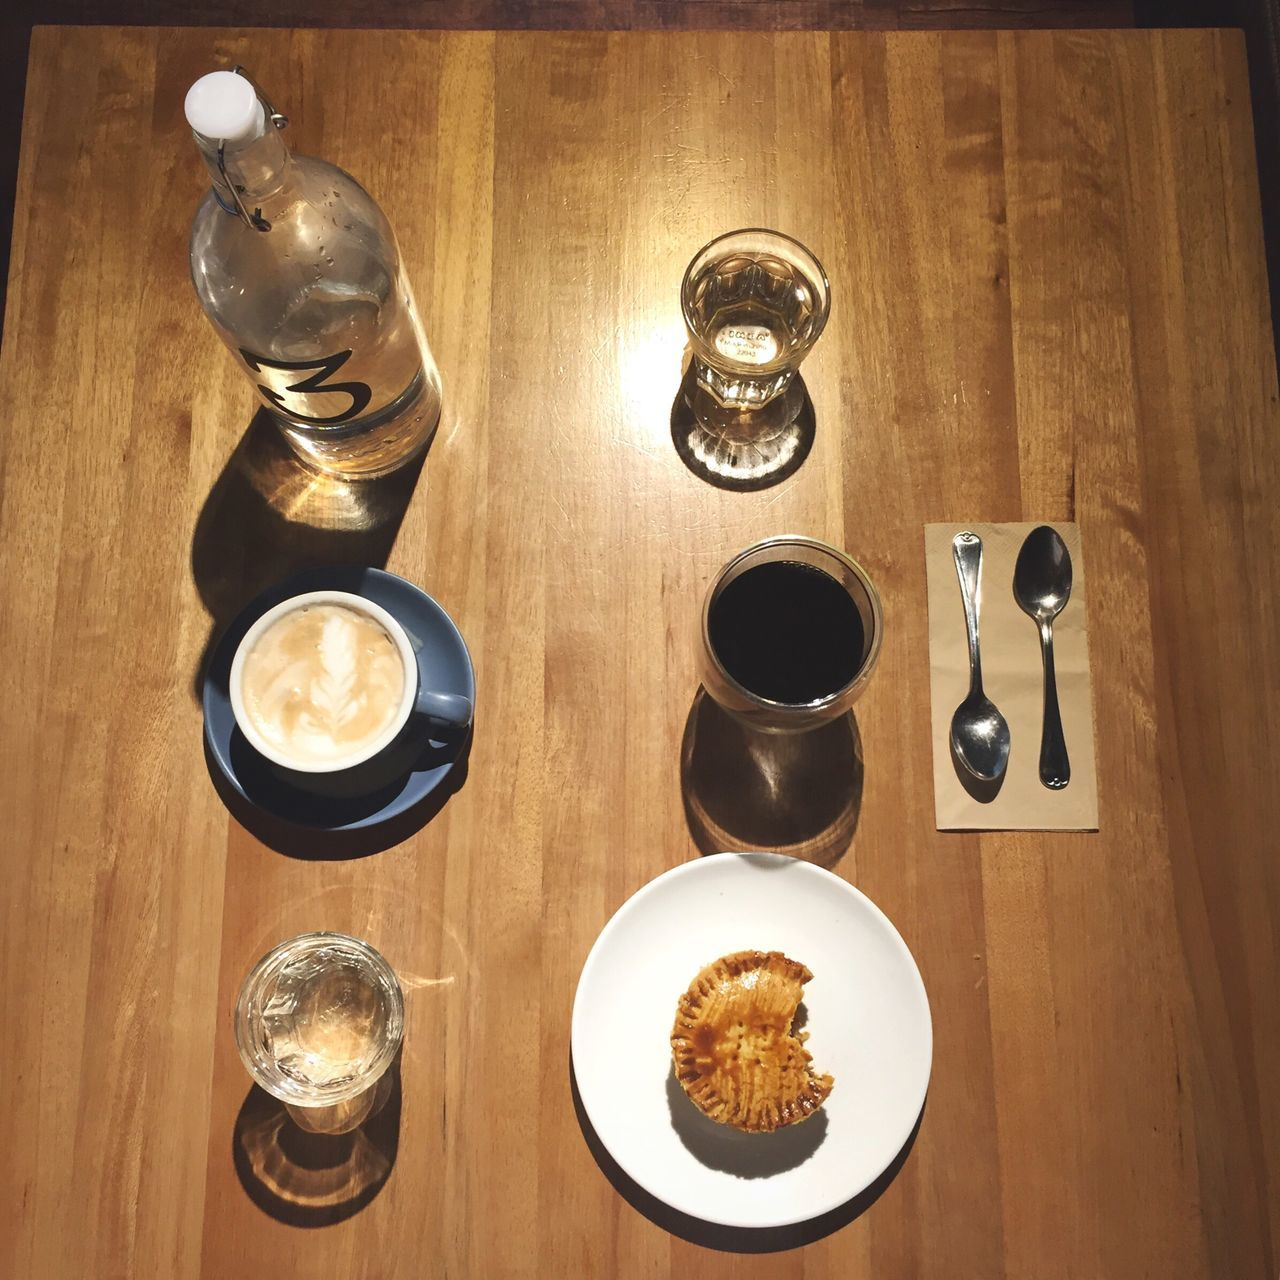 ☕️☕️ Latte Coffee BrewedCoffee Coffee Time High Angle View Wood - Material Food And Drink Freshness Hometown EyeEmNewHere Iphone6